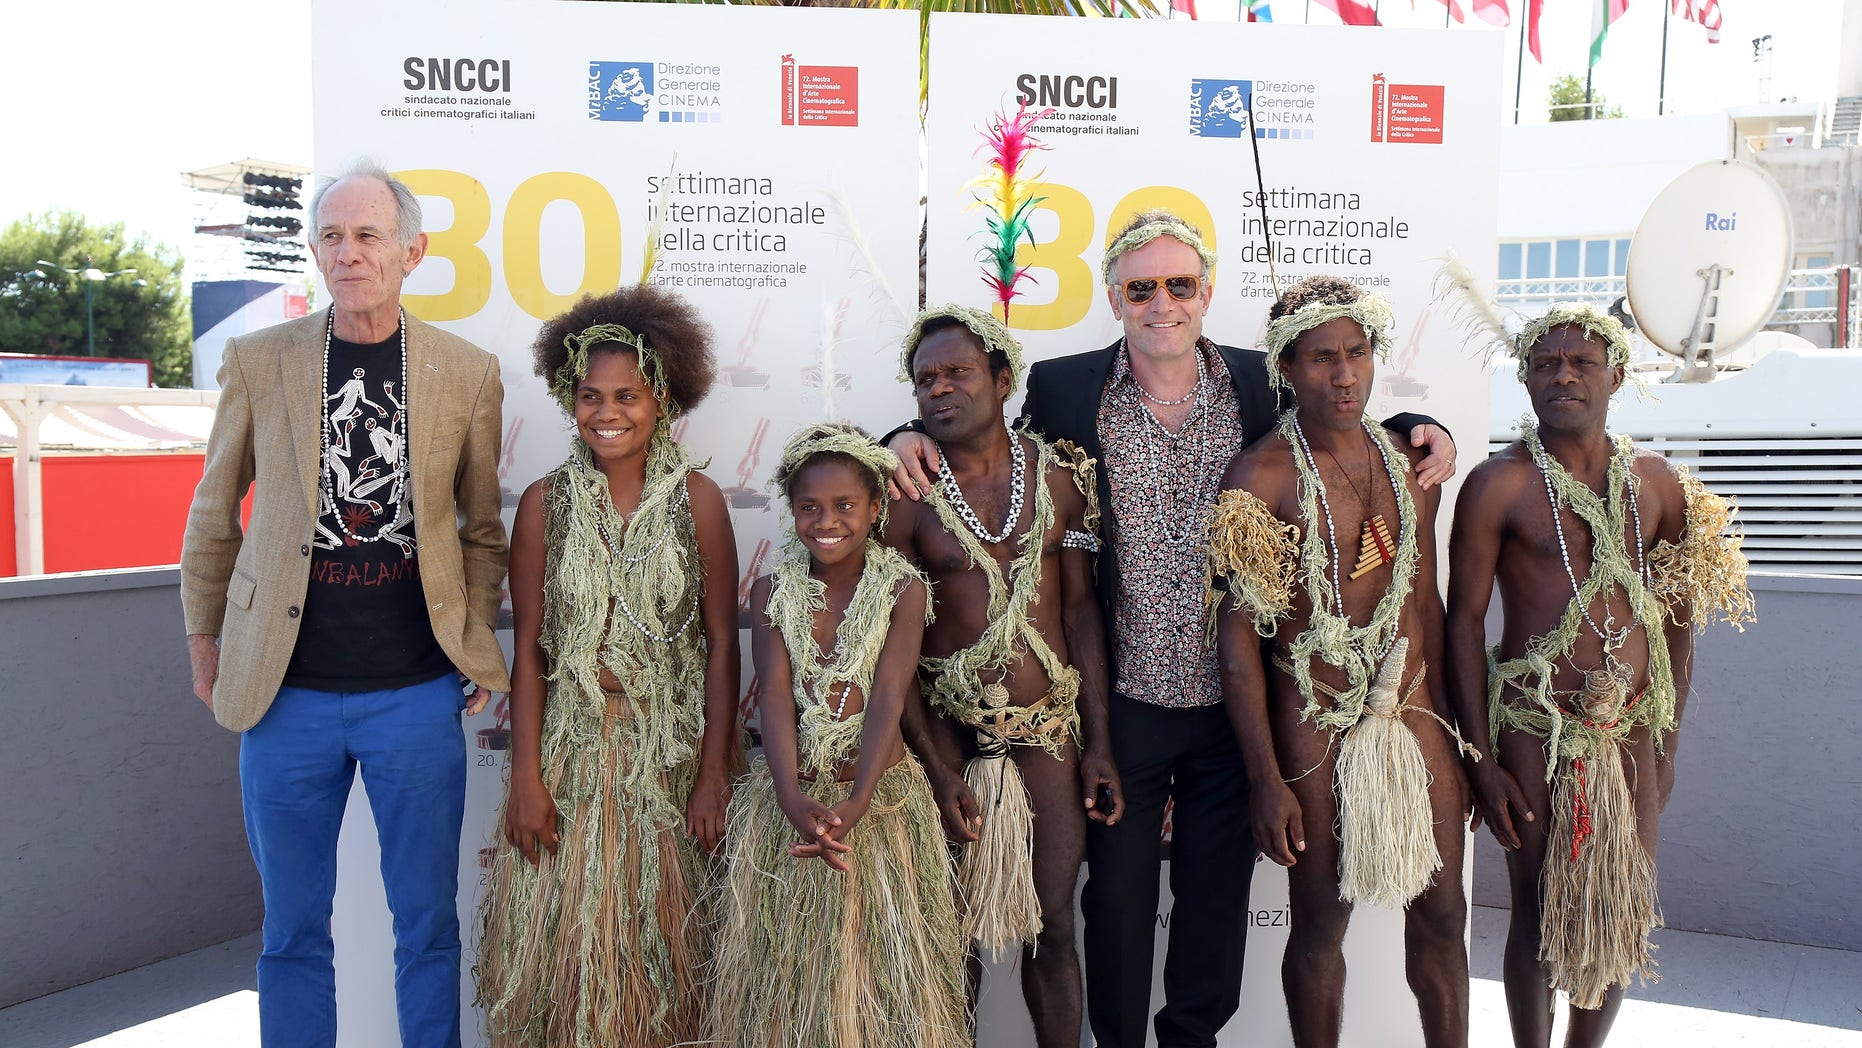 (L-R) Director Martin Butler, Marie Wawa, Marceline Rofit, Lingai Kowia, director Bentley Dean, Mungau Dain and Jimmy Jospeh Nako attend a photocall for 'Tanna' during the 72nd Venice Film Festival. It was reported that Dain has died.